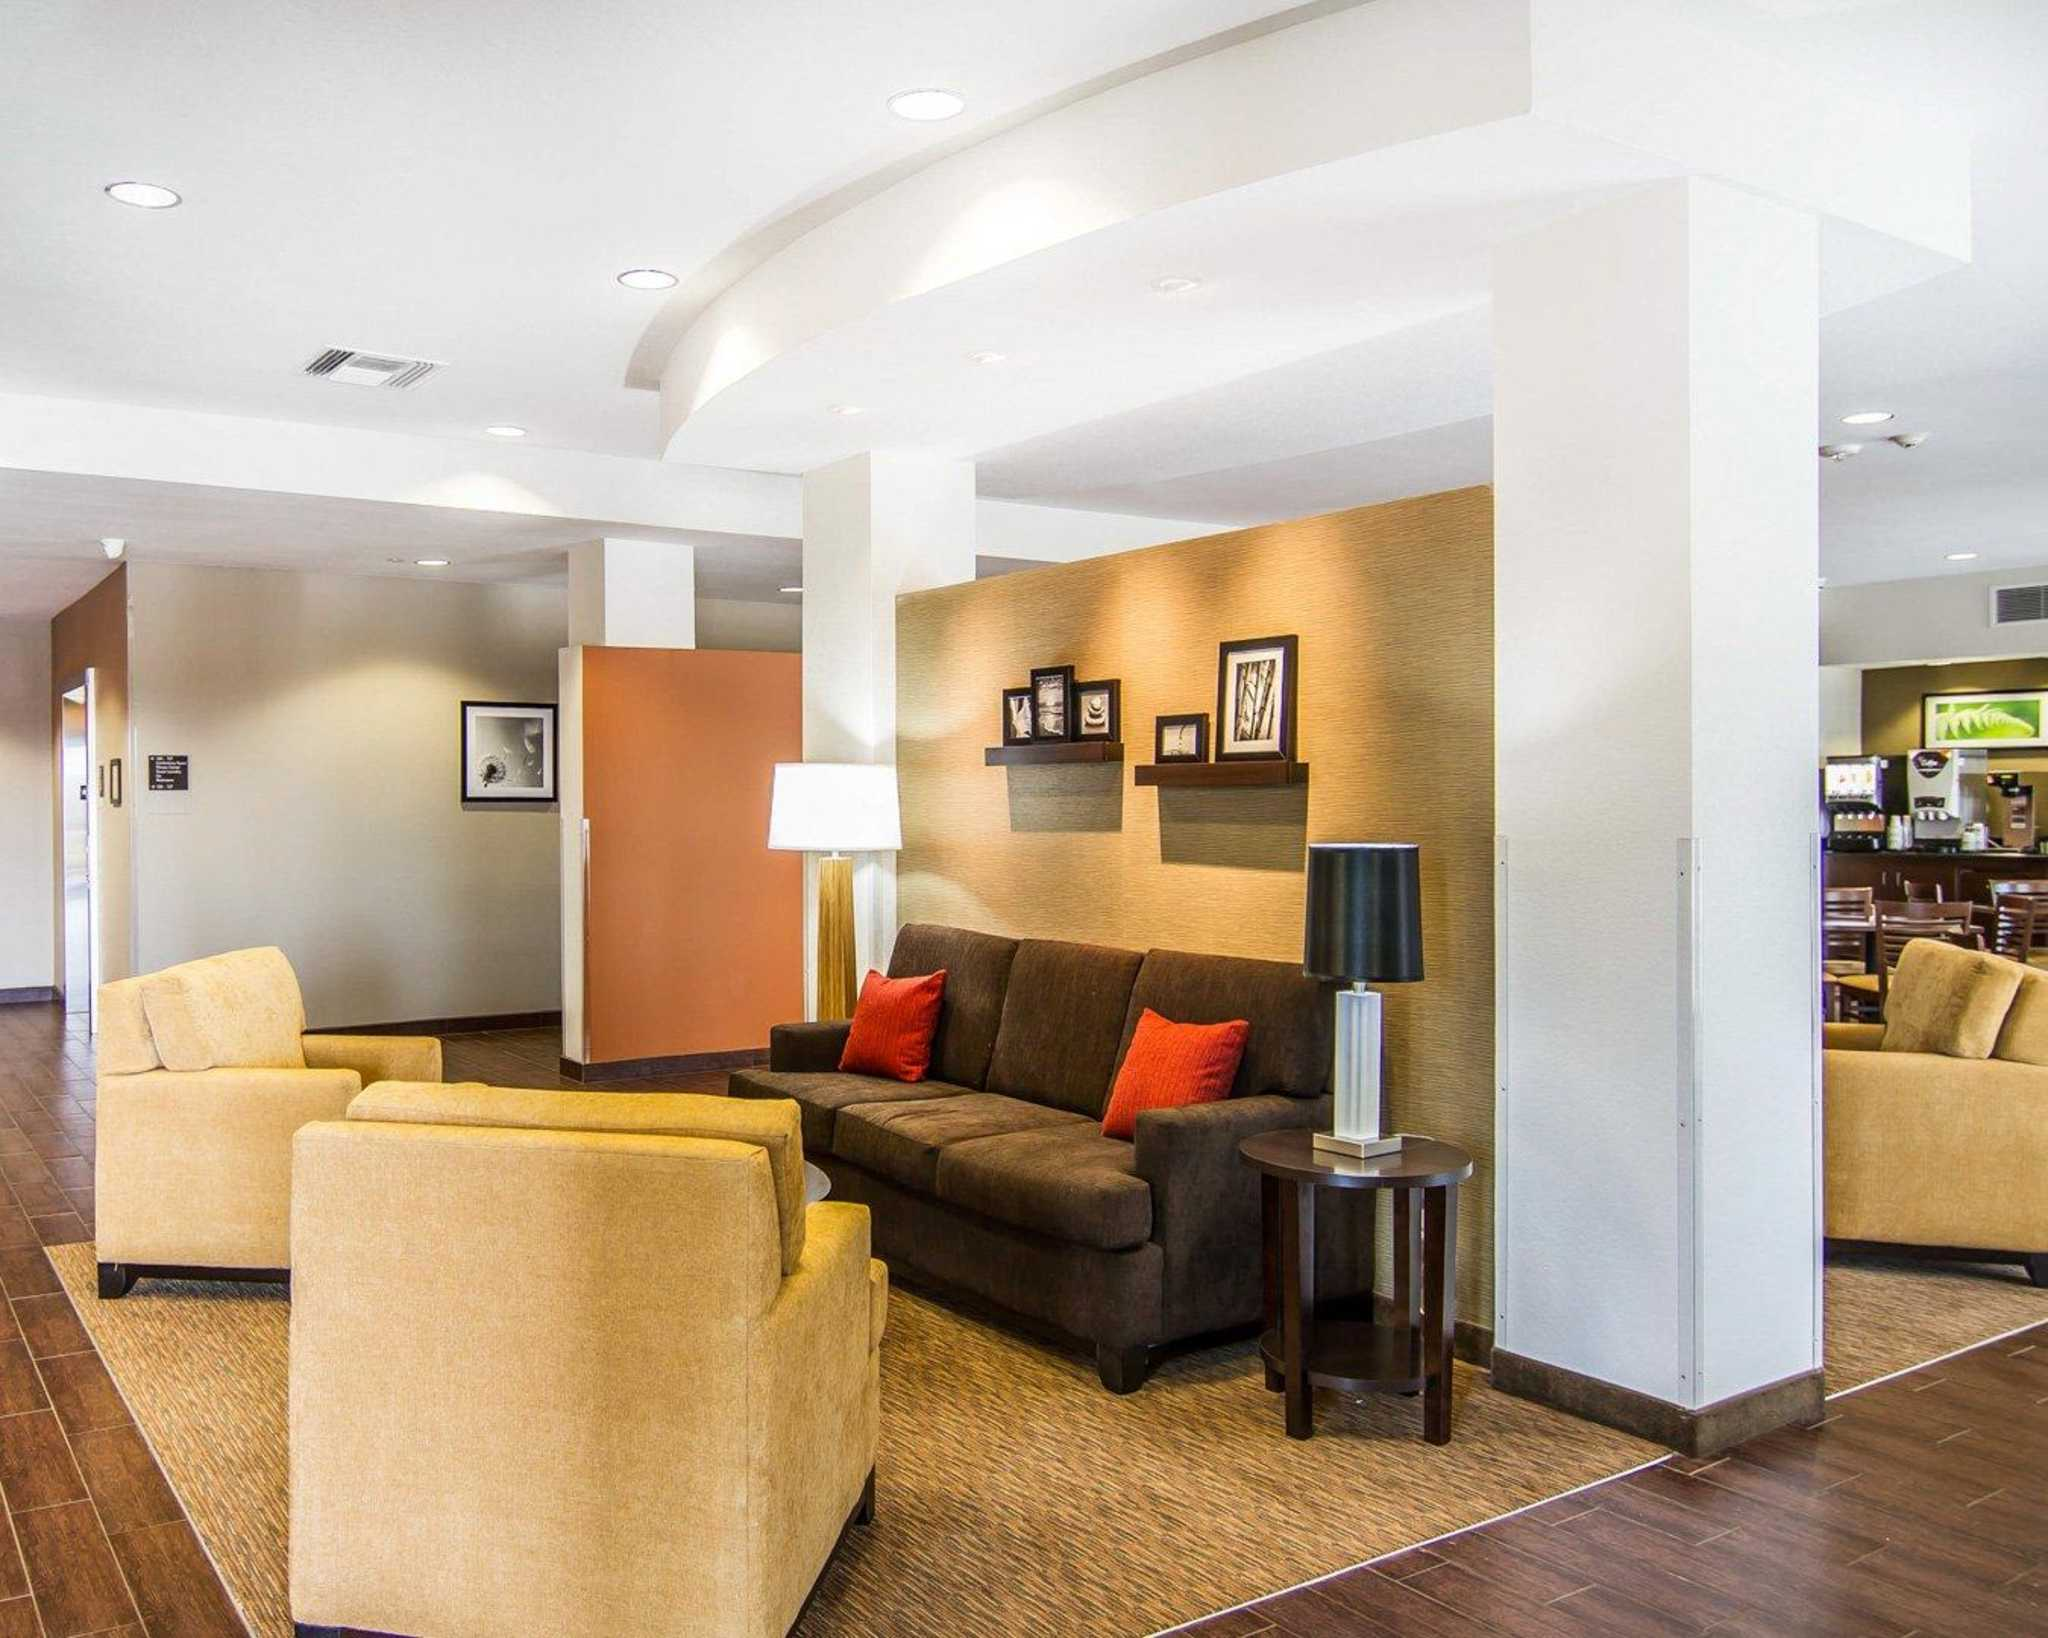 MainStay Suites image 21